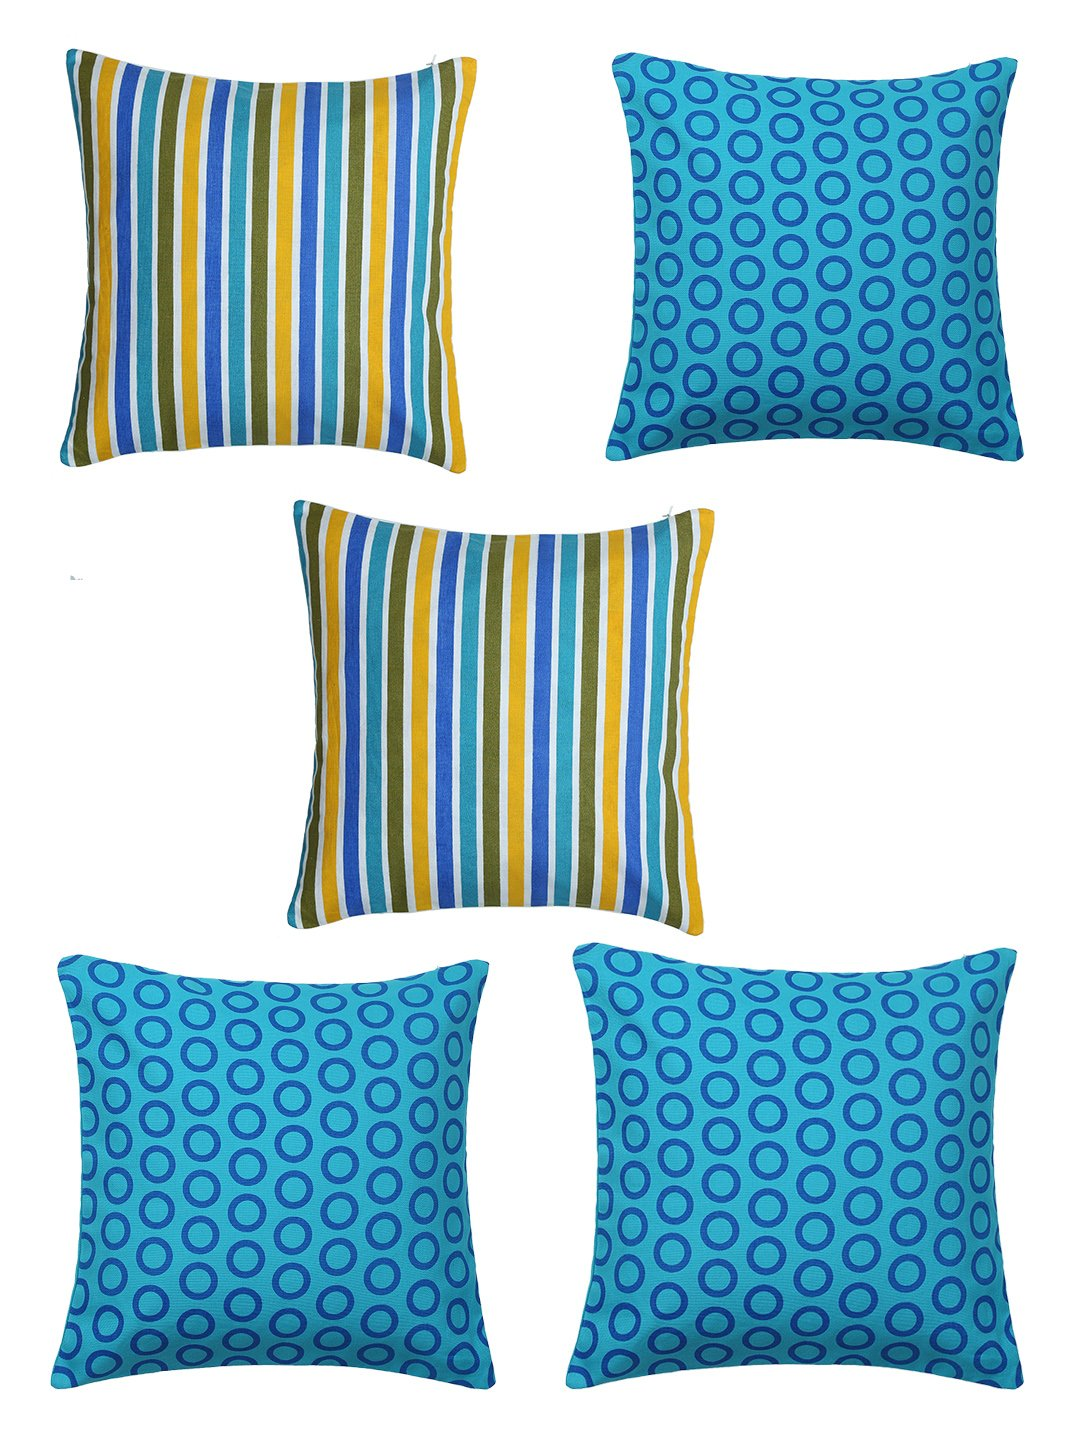 Geometrical Offer Cushion Covers